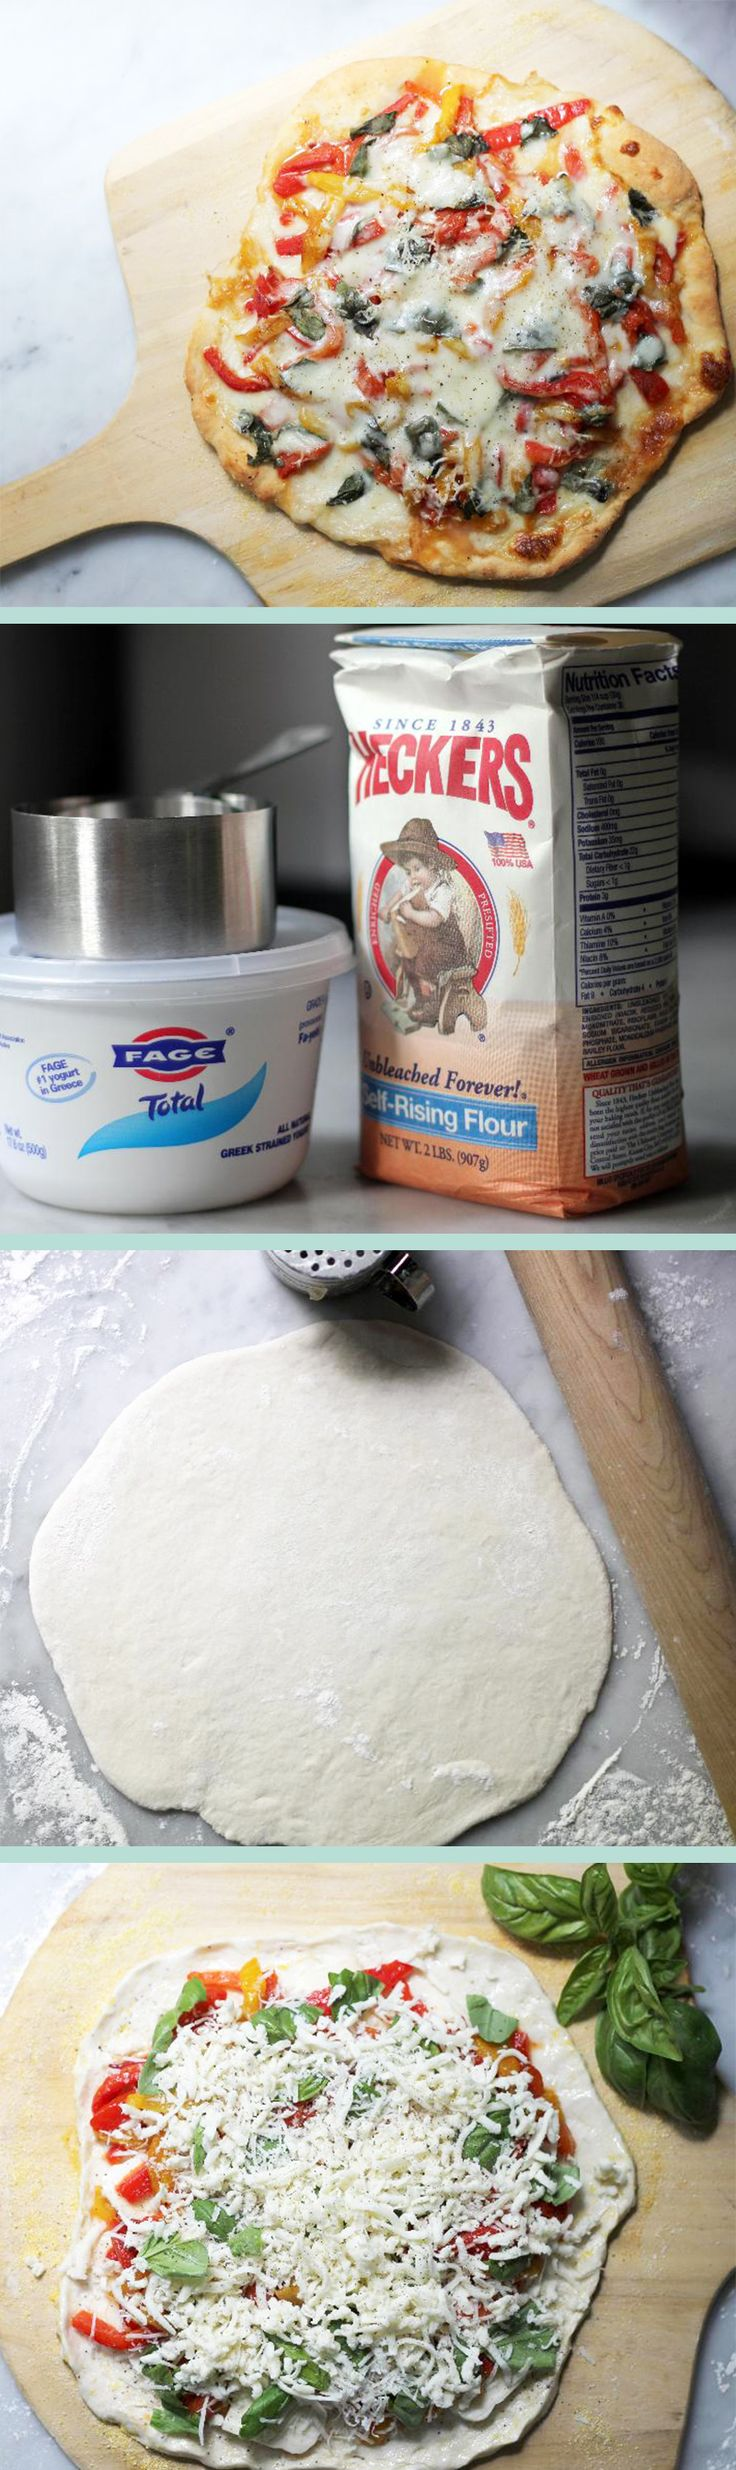 This 2-ingredient pizza dough is the easiest way to bake a homemade crust — and it's healthy! All you'll need is Greek yogurt and self-rising flour. Follow this recipe to create your own delicious, fast, and easy pizza.